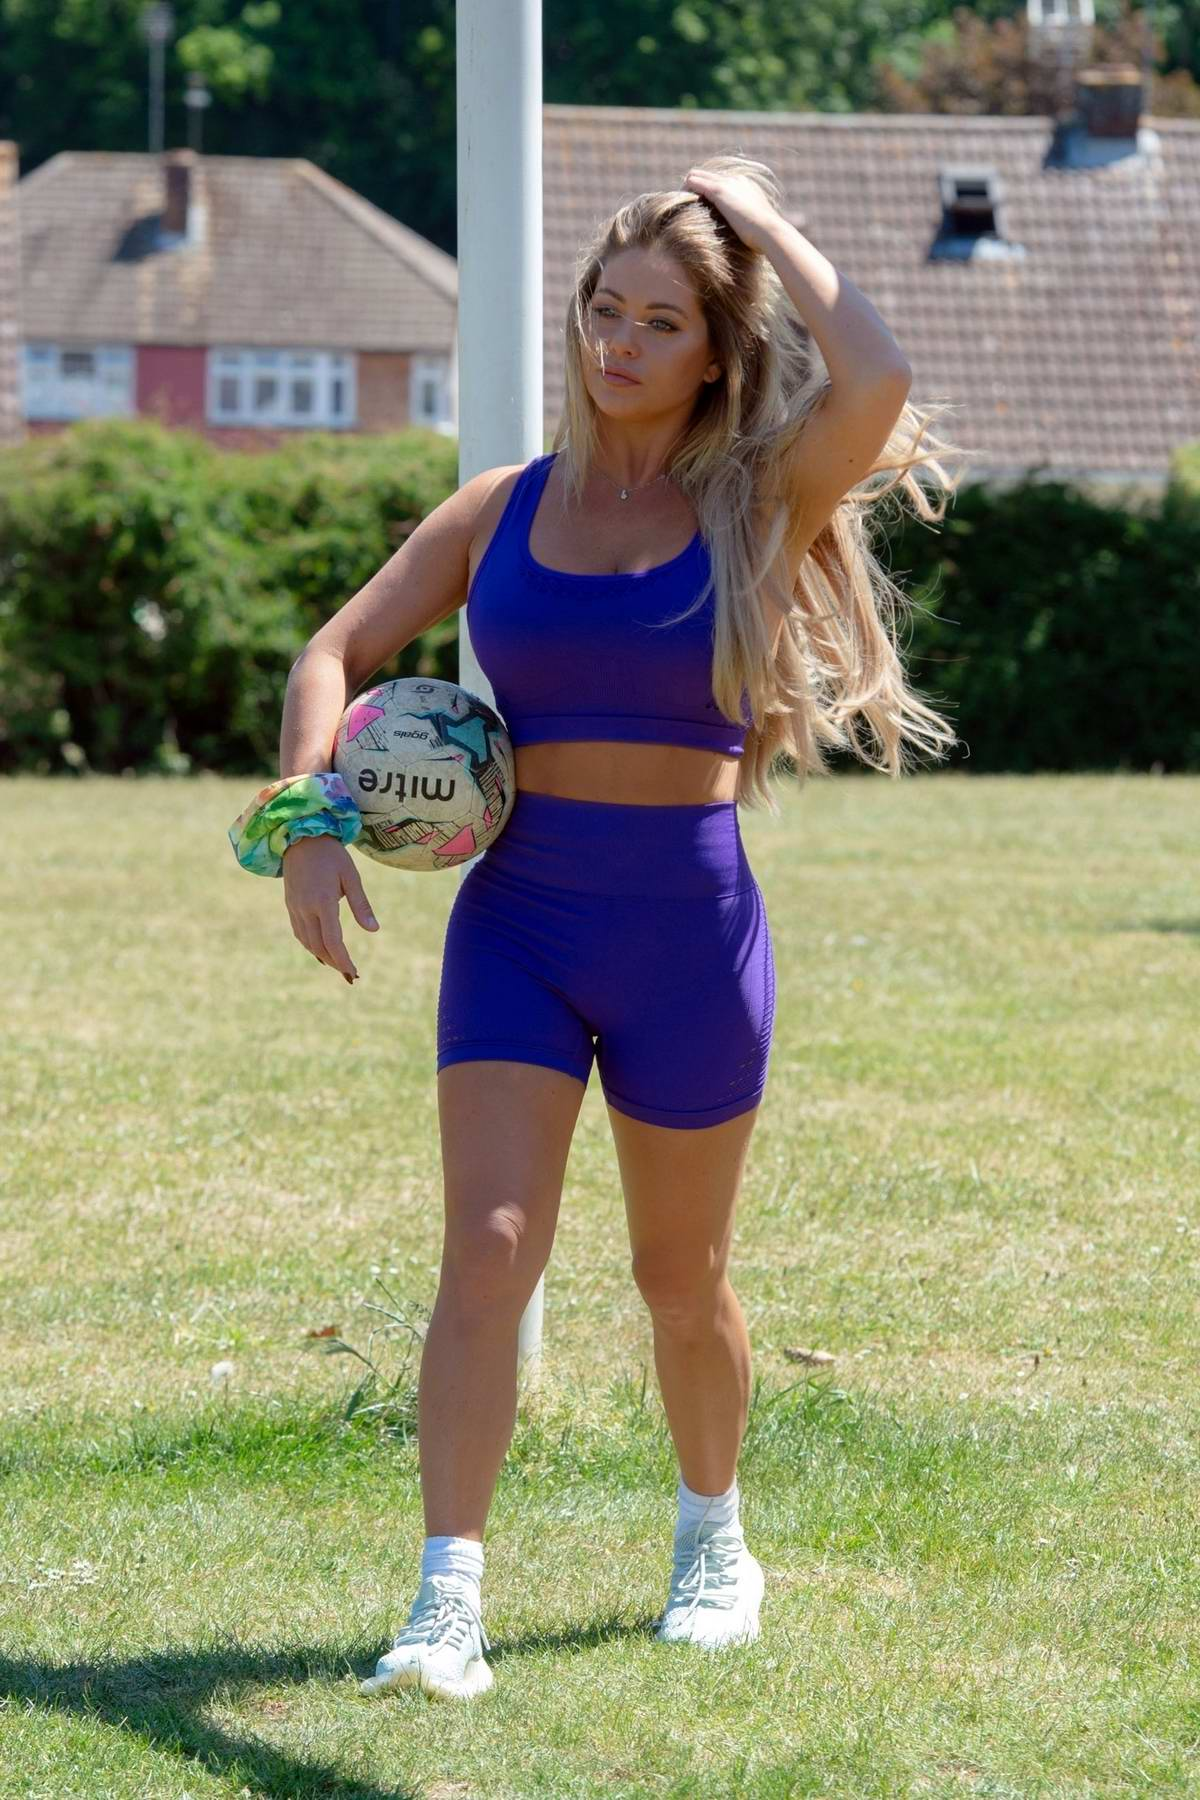 Bianca Gascoigne gets in her workout by playing some football at a local park in Kent, UK